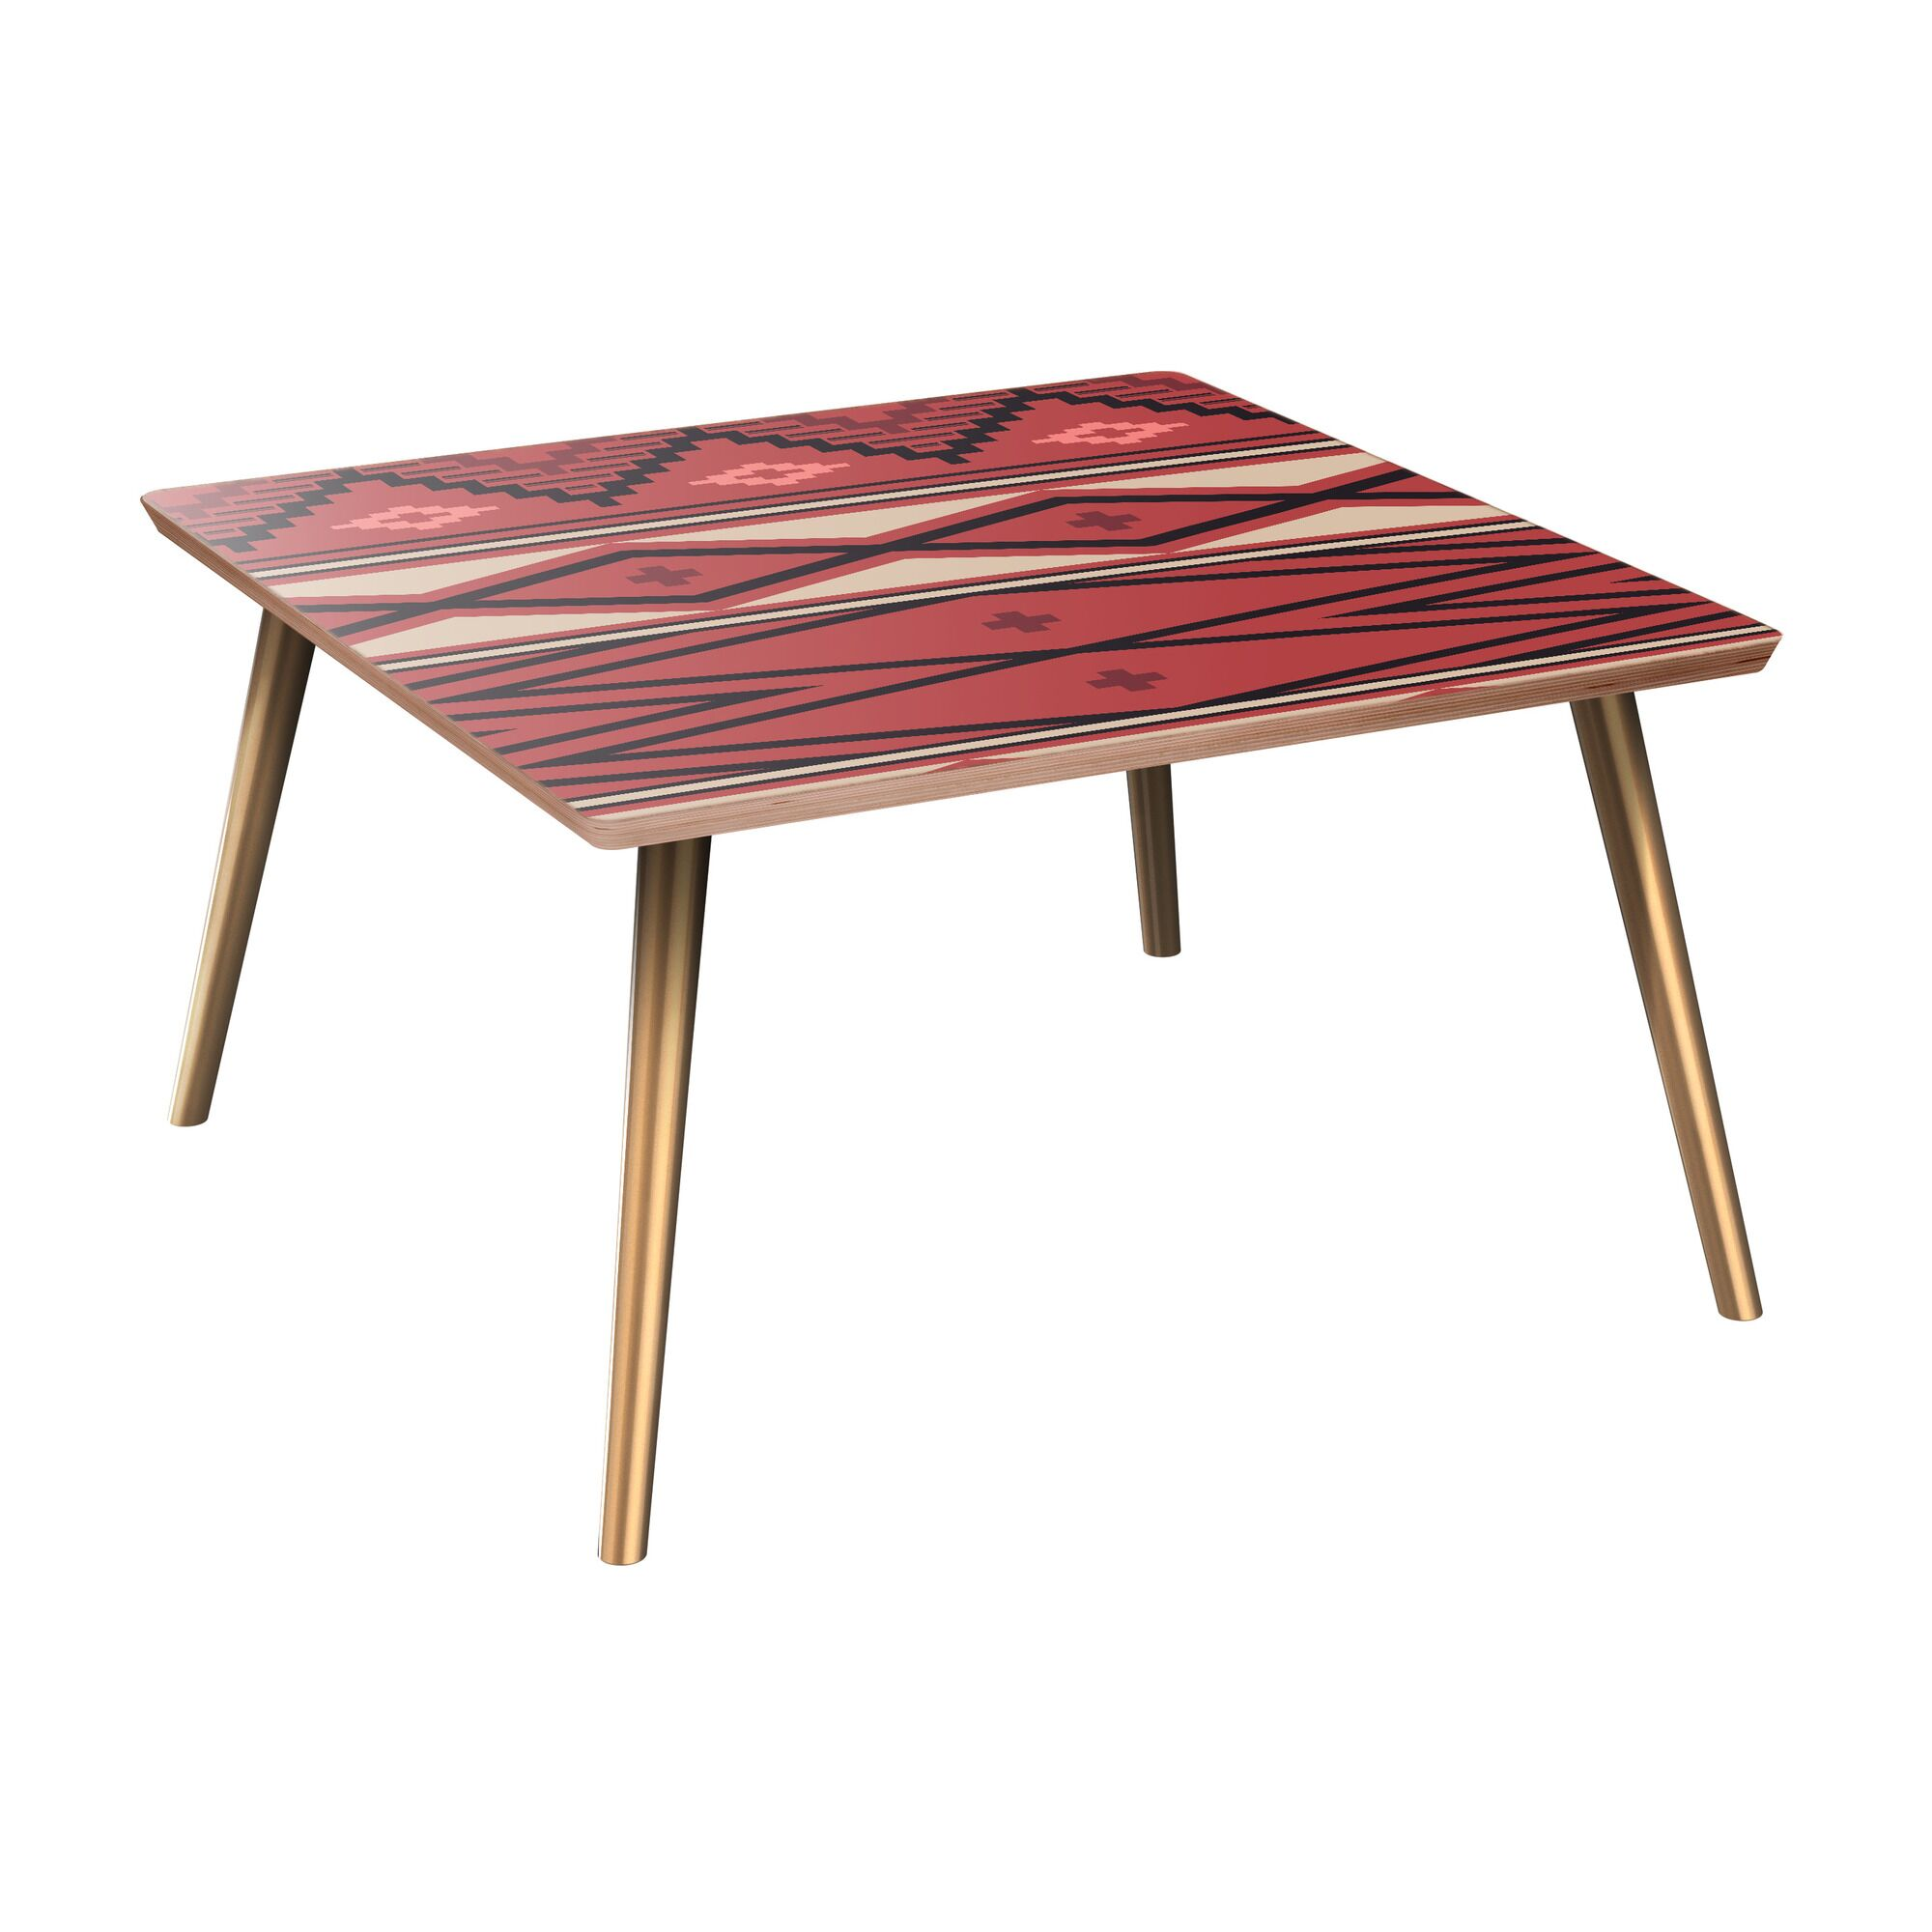 Hollymead Coffee Table Table Base Color: Brass, Table Top Boarder Color: Walnut, Table Top Color: Pink/Blue